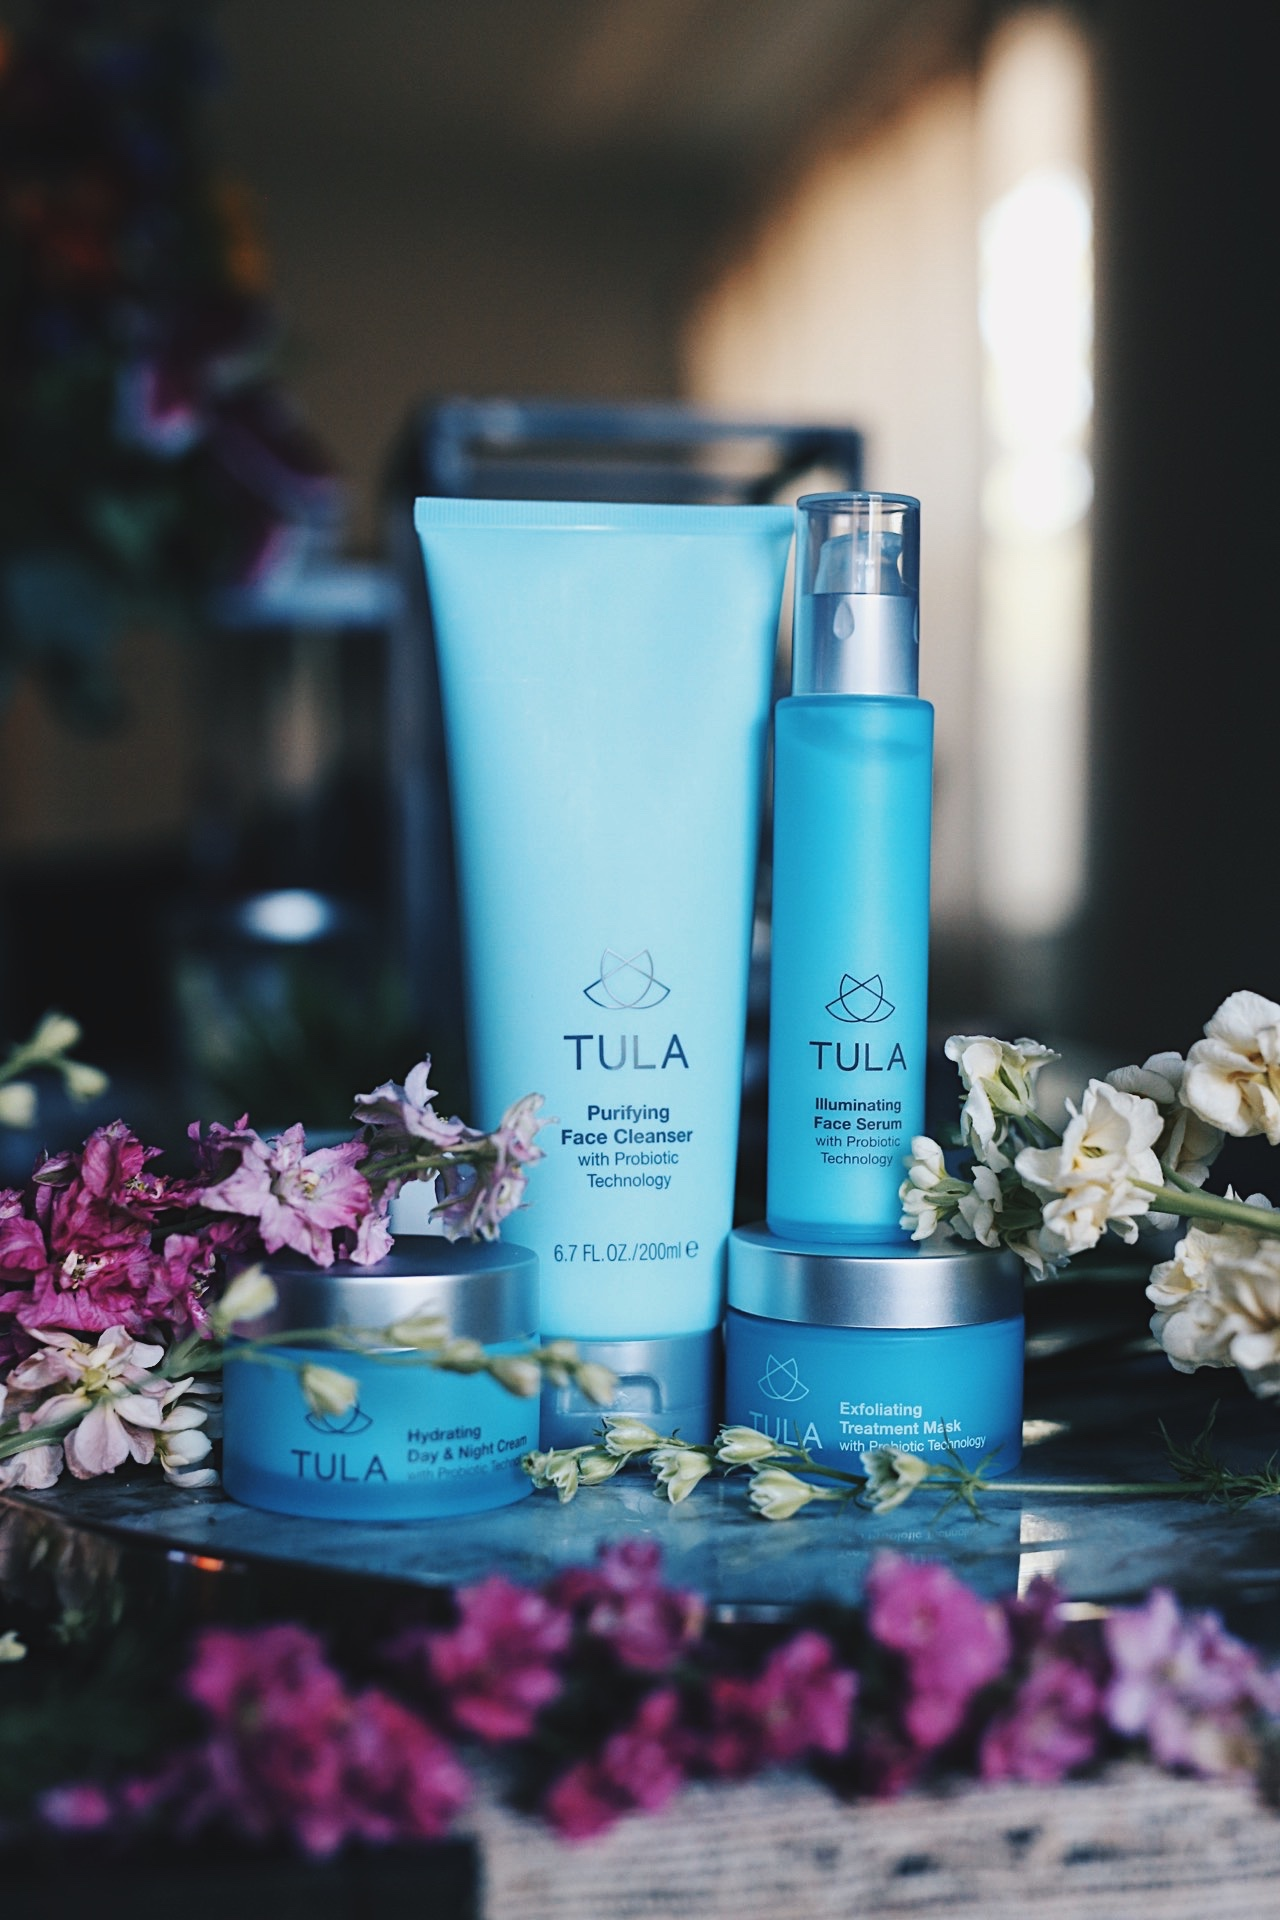 Austin blogger DTKAustin shares why healthy skincare is so important at any age with TULA   best skincare products   skincare products for any age   skincare routines   how to use skincare products   TULA skincare review   TULA skincare products    Dressed to Kill